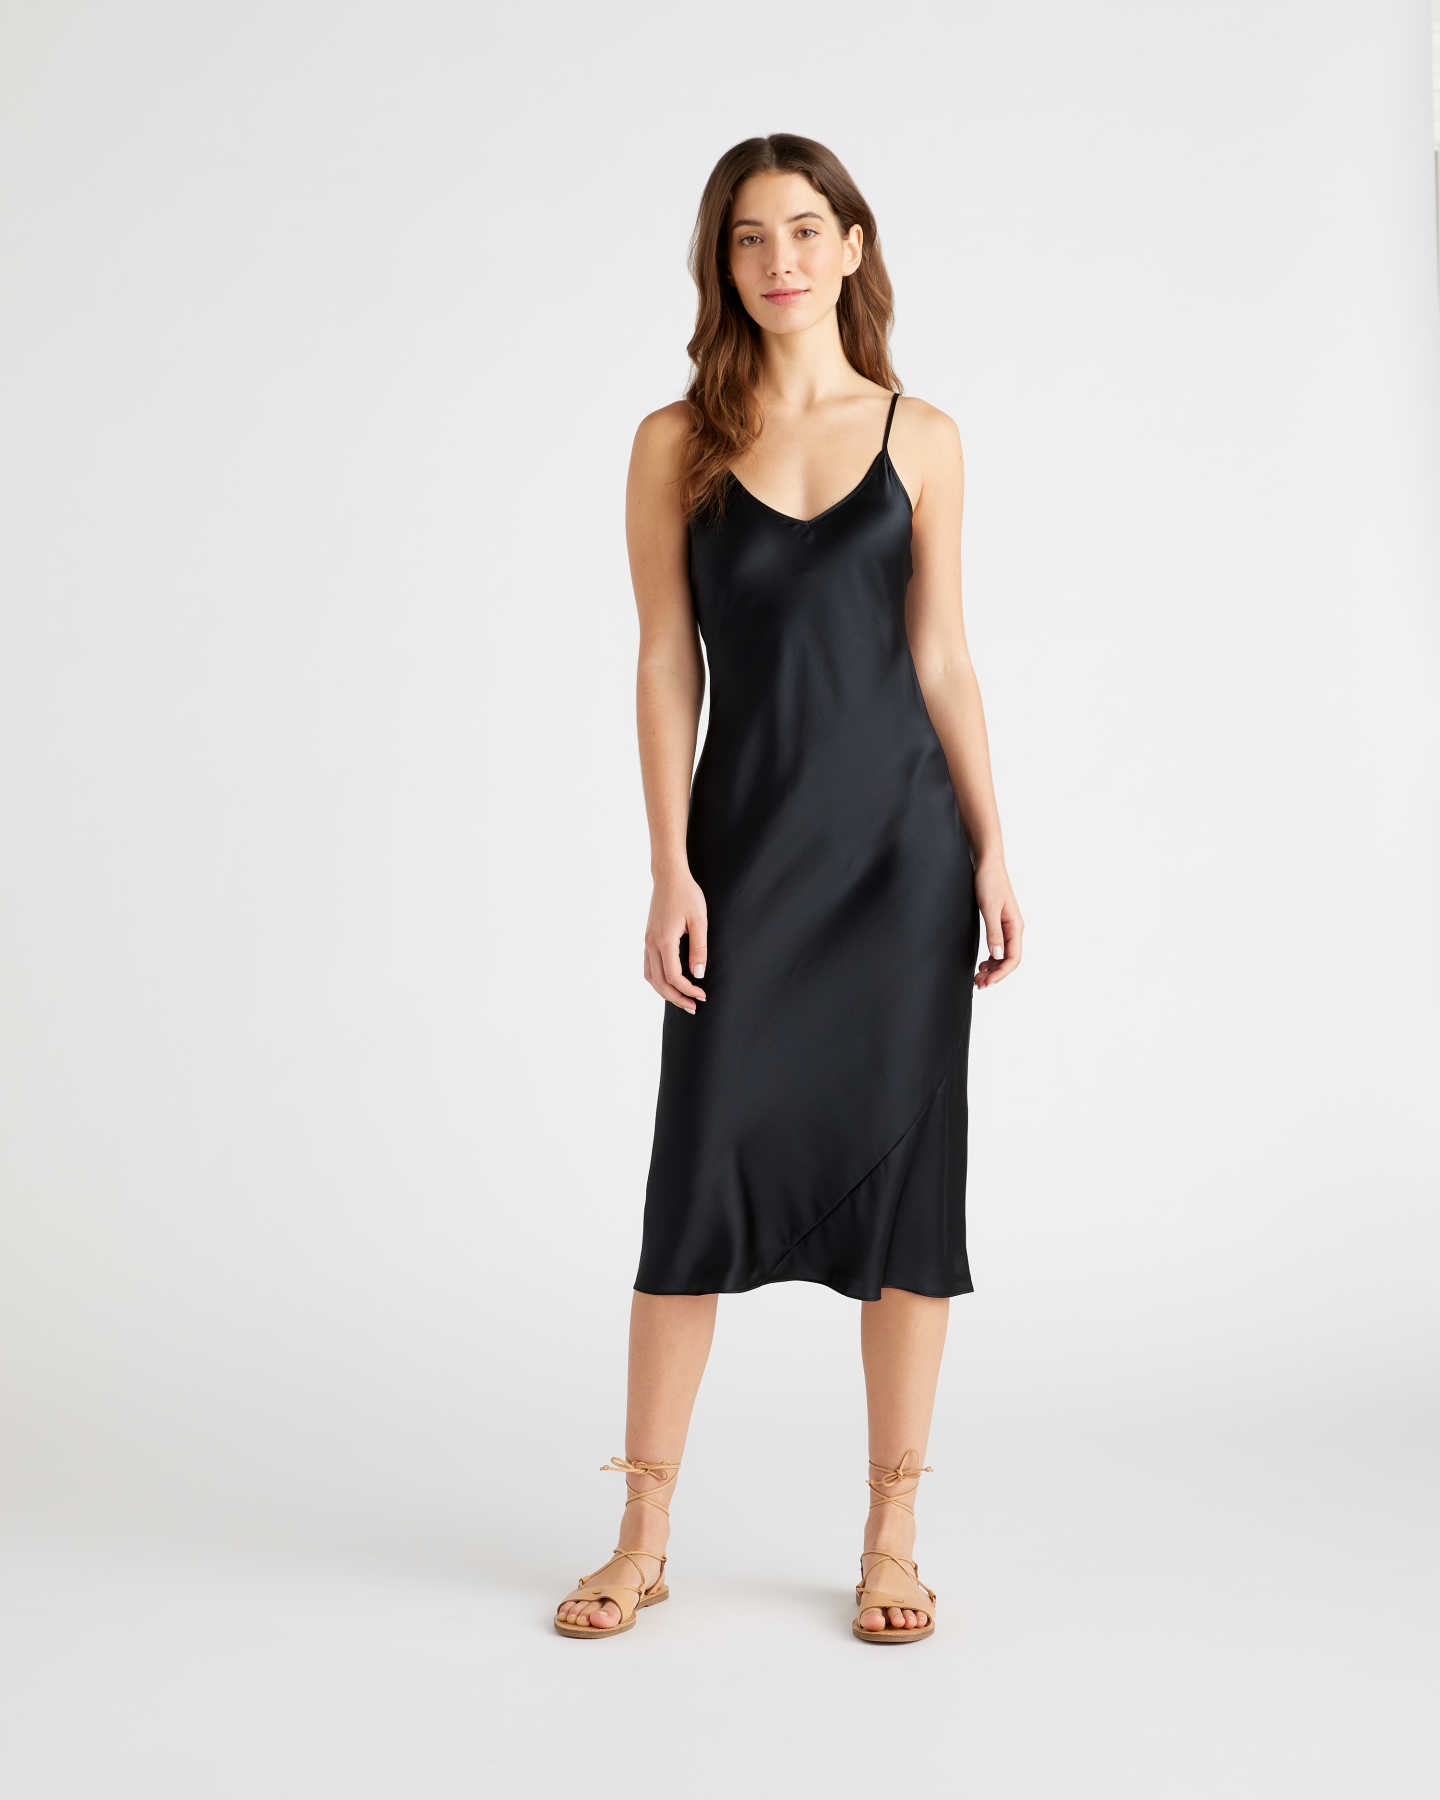 100% Washable Silk Slip Dress - Black